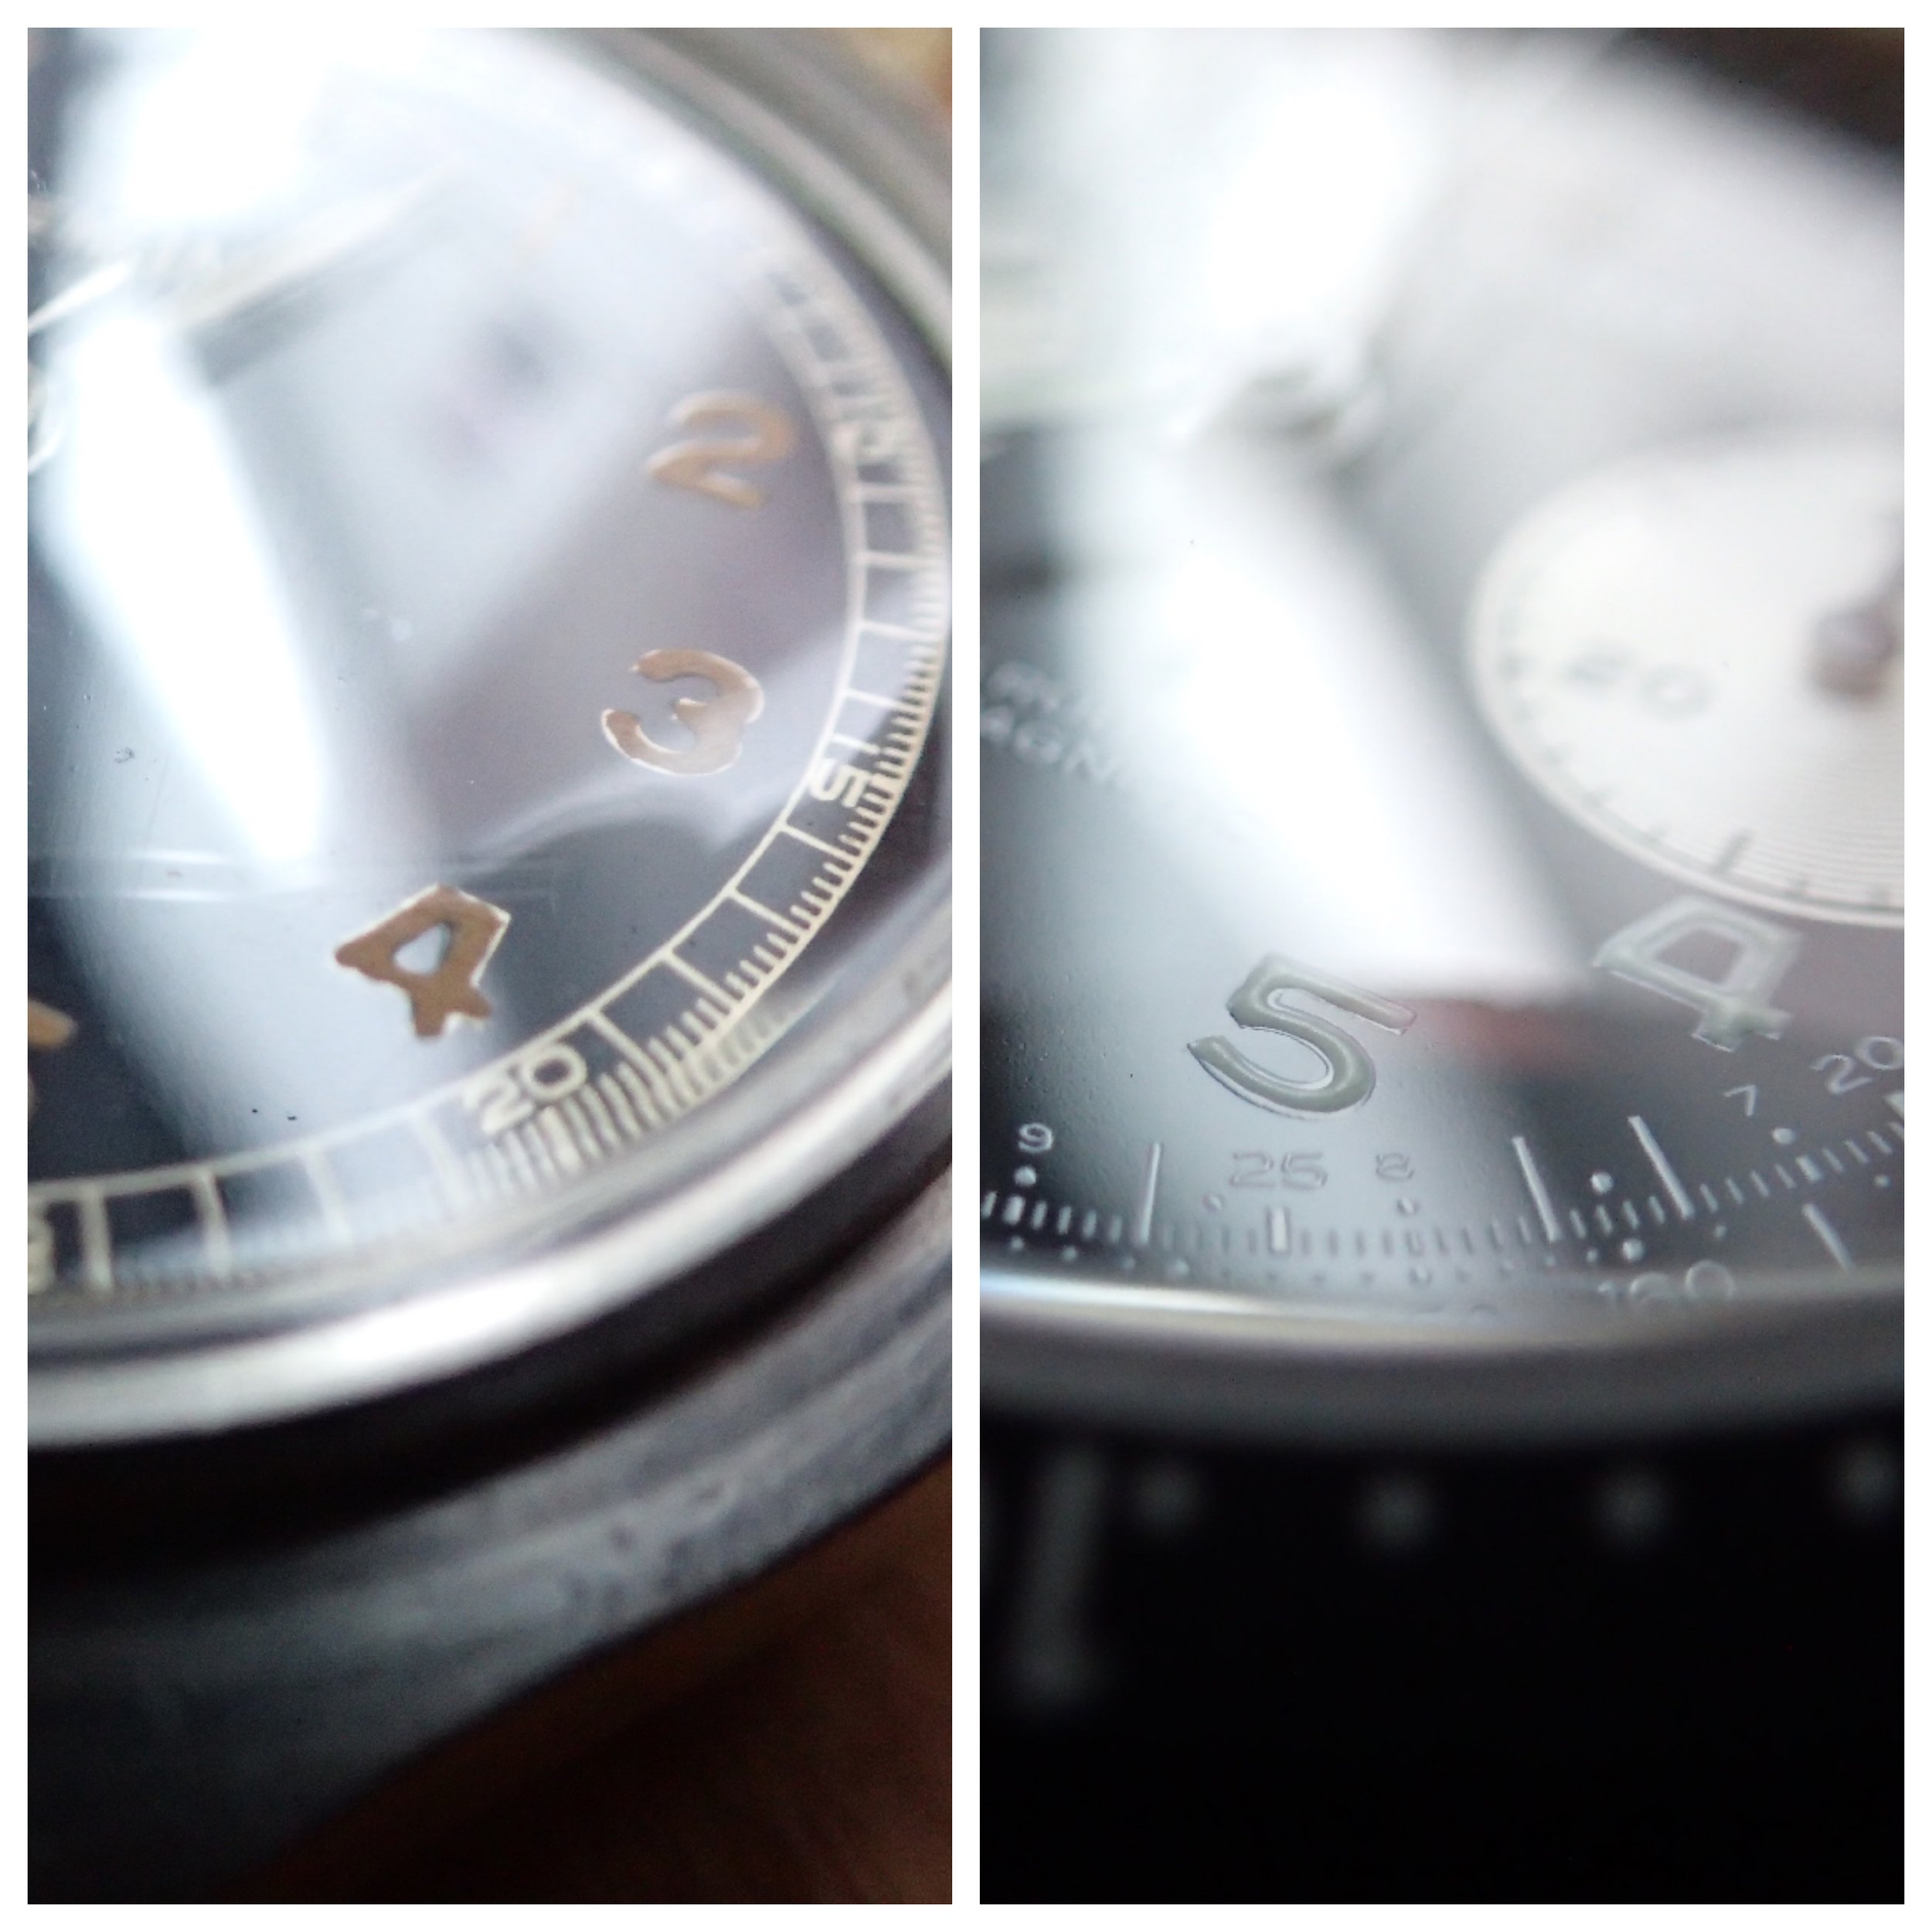 Luminescent dial details of the Lemania Tg 195 (L) and Guinand Model 361 (R).